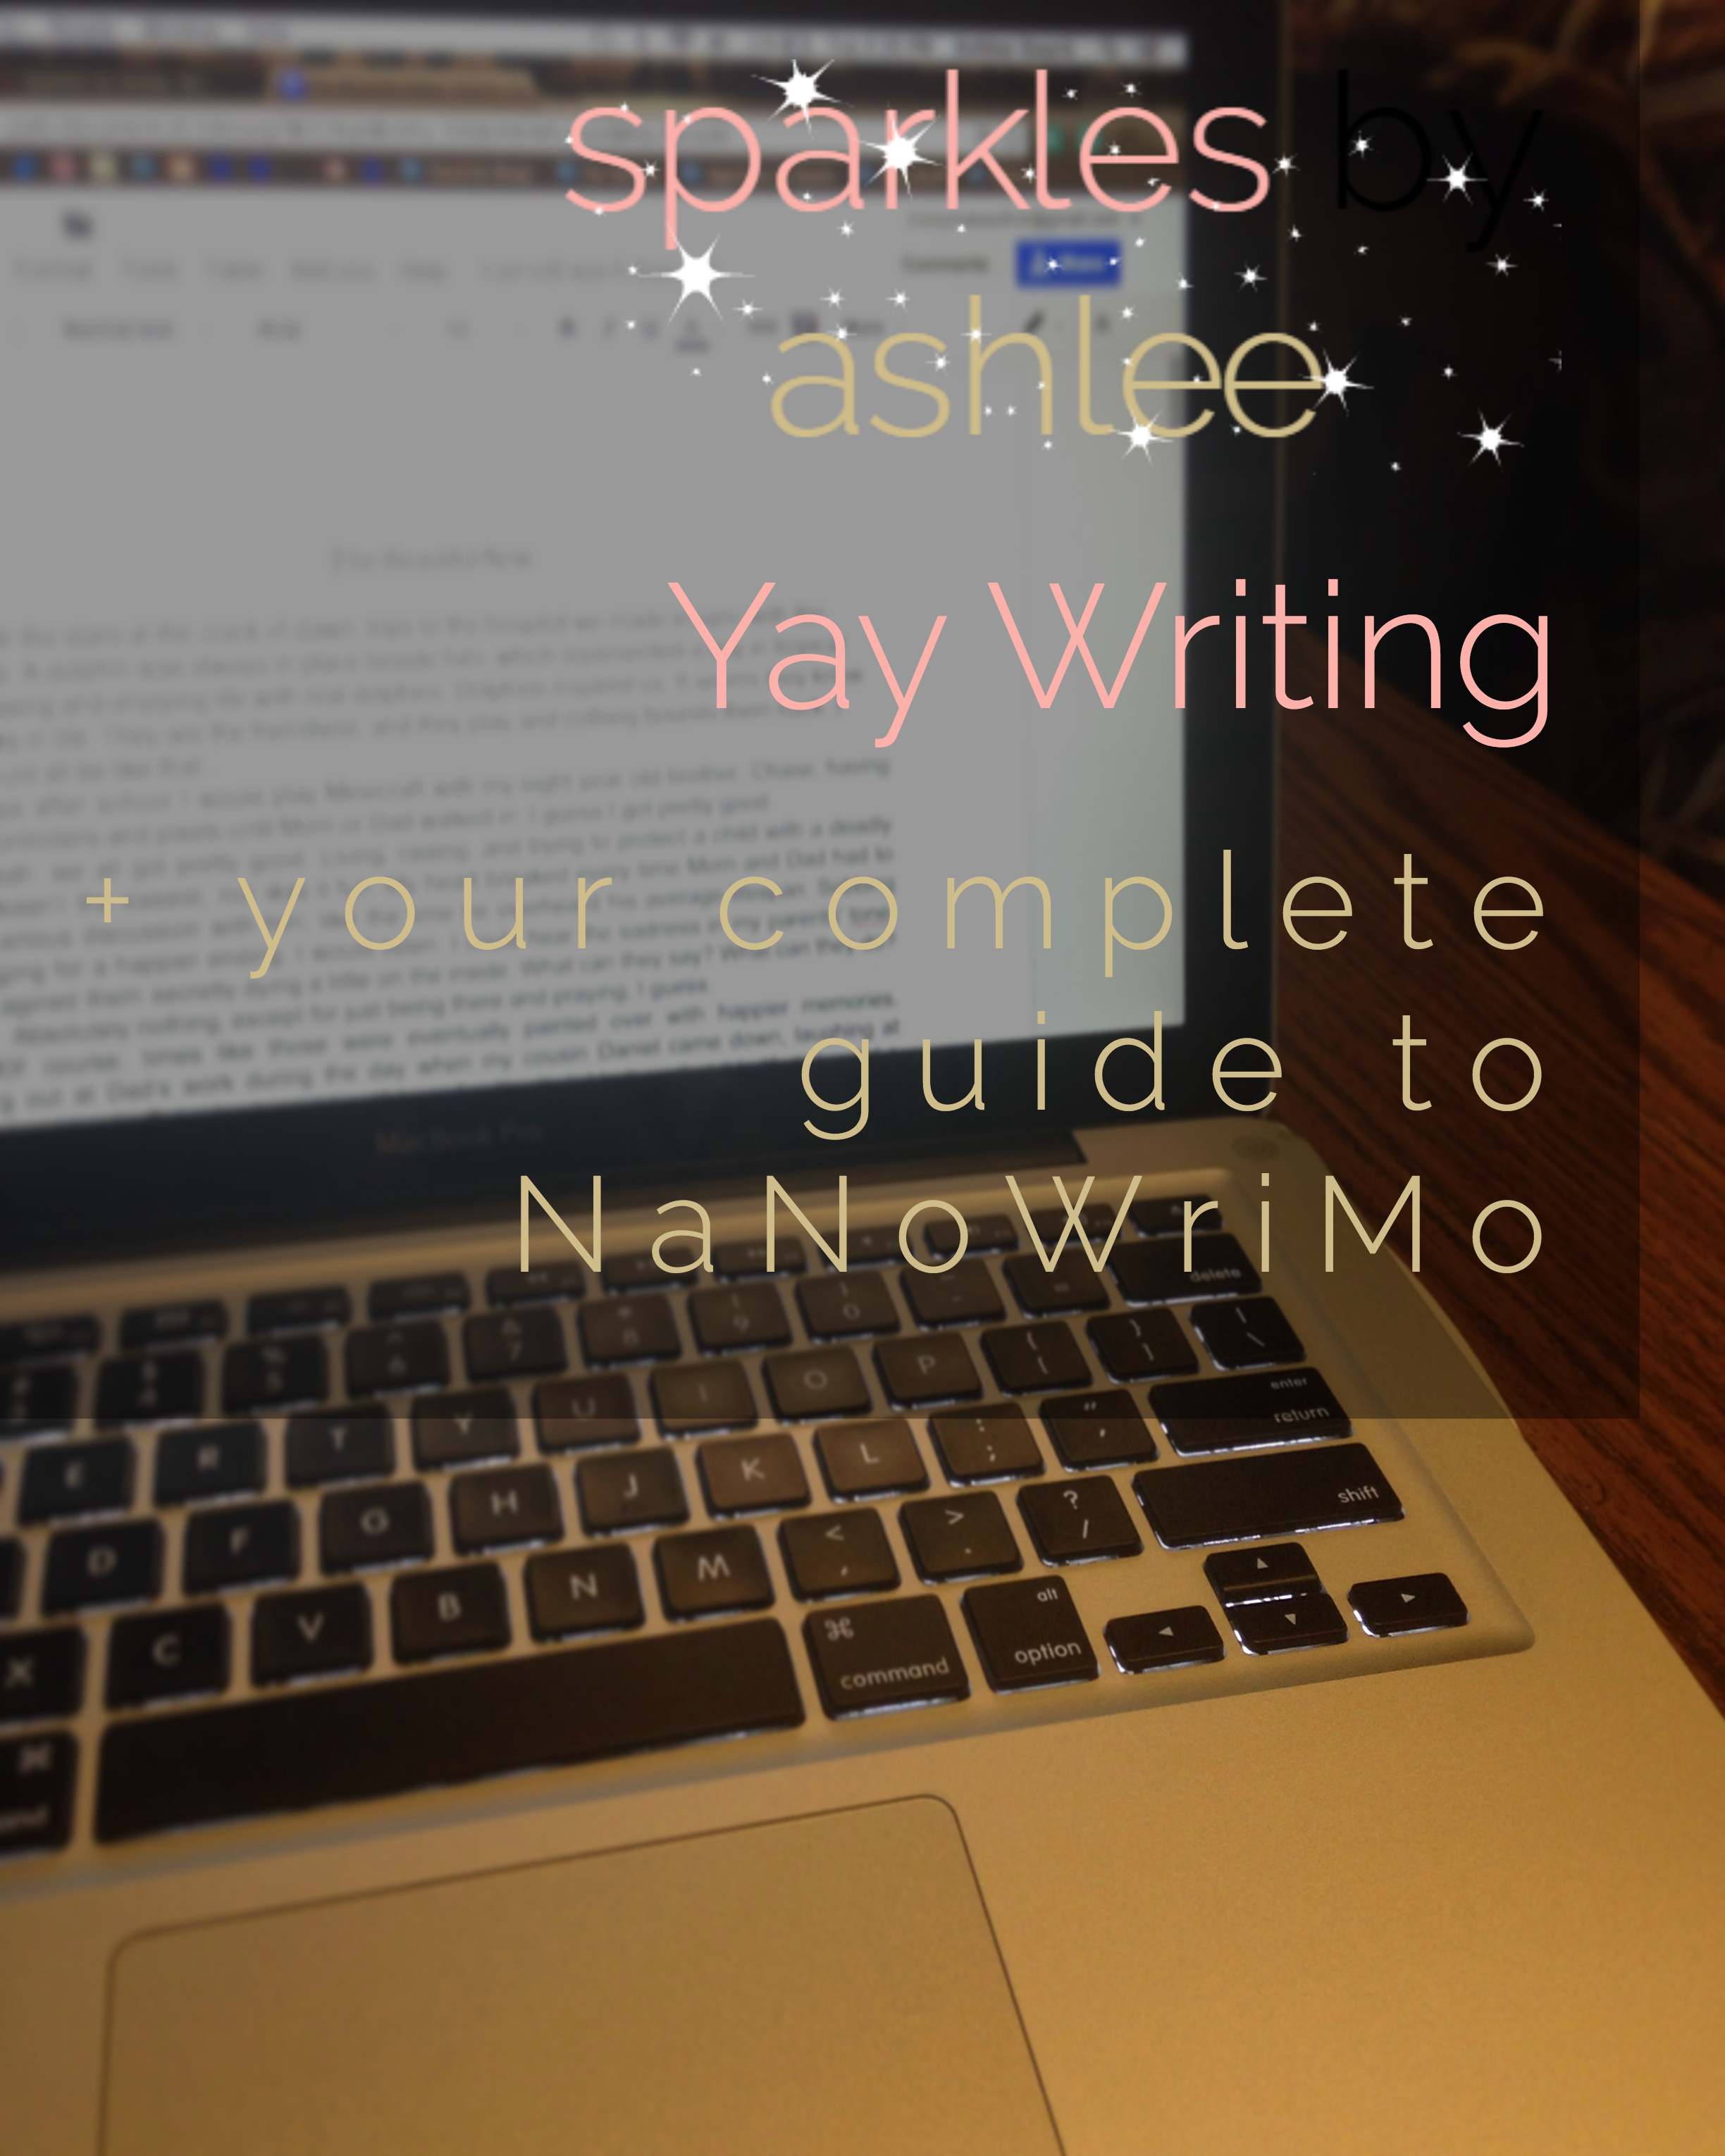 Yay-Writing-Plus-Your-Complete-Guide-to-Preparing-for-NaNoWriMo-Sparkles-by-Ashlee.jpg